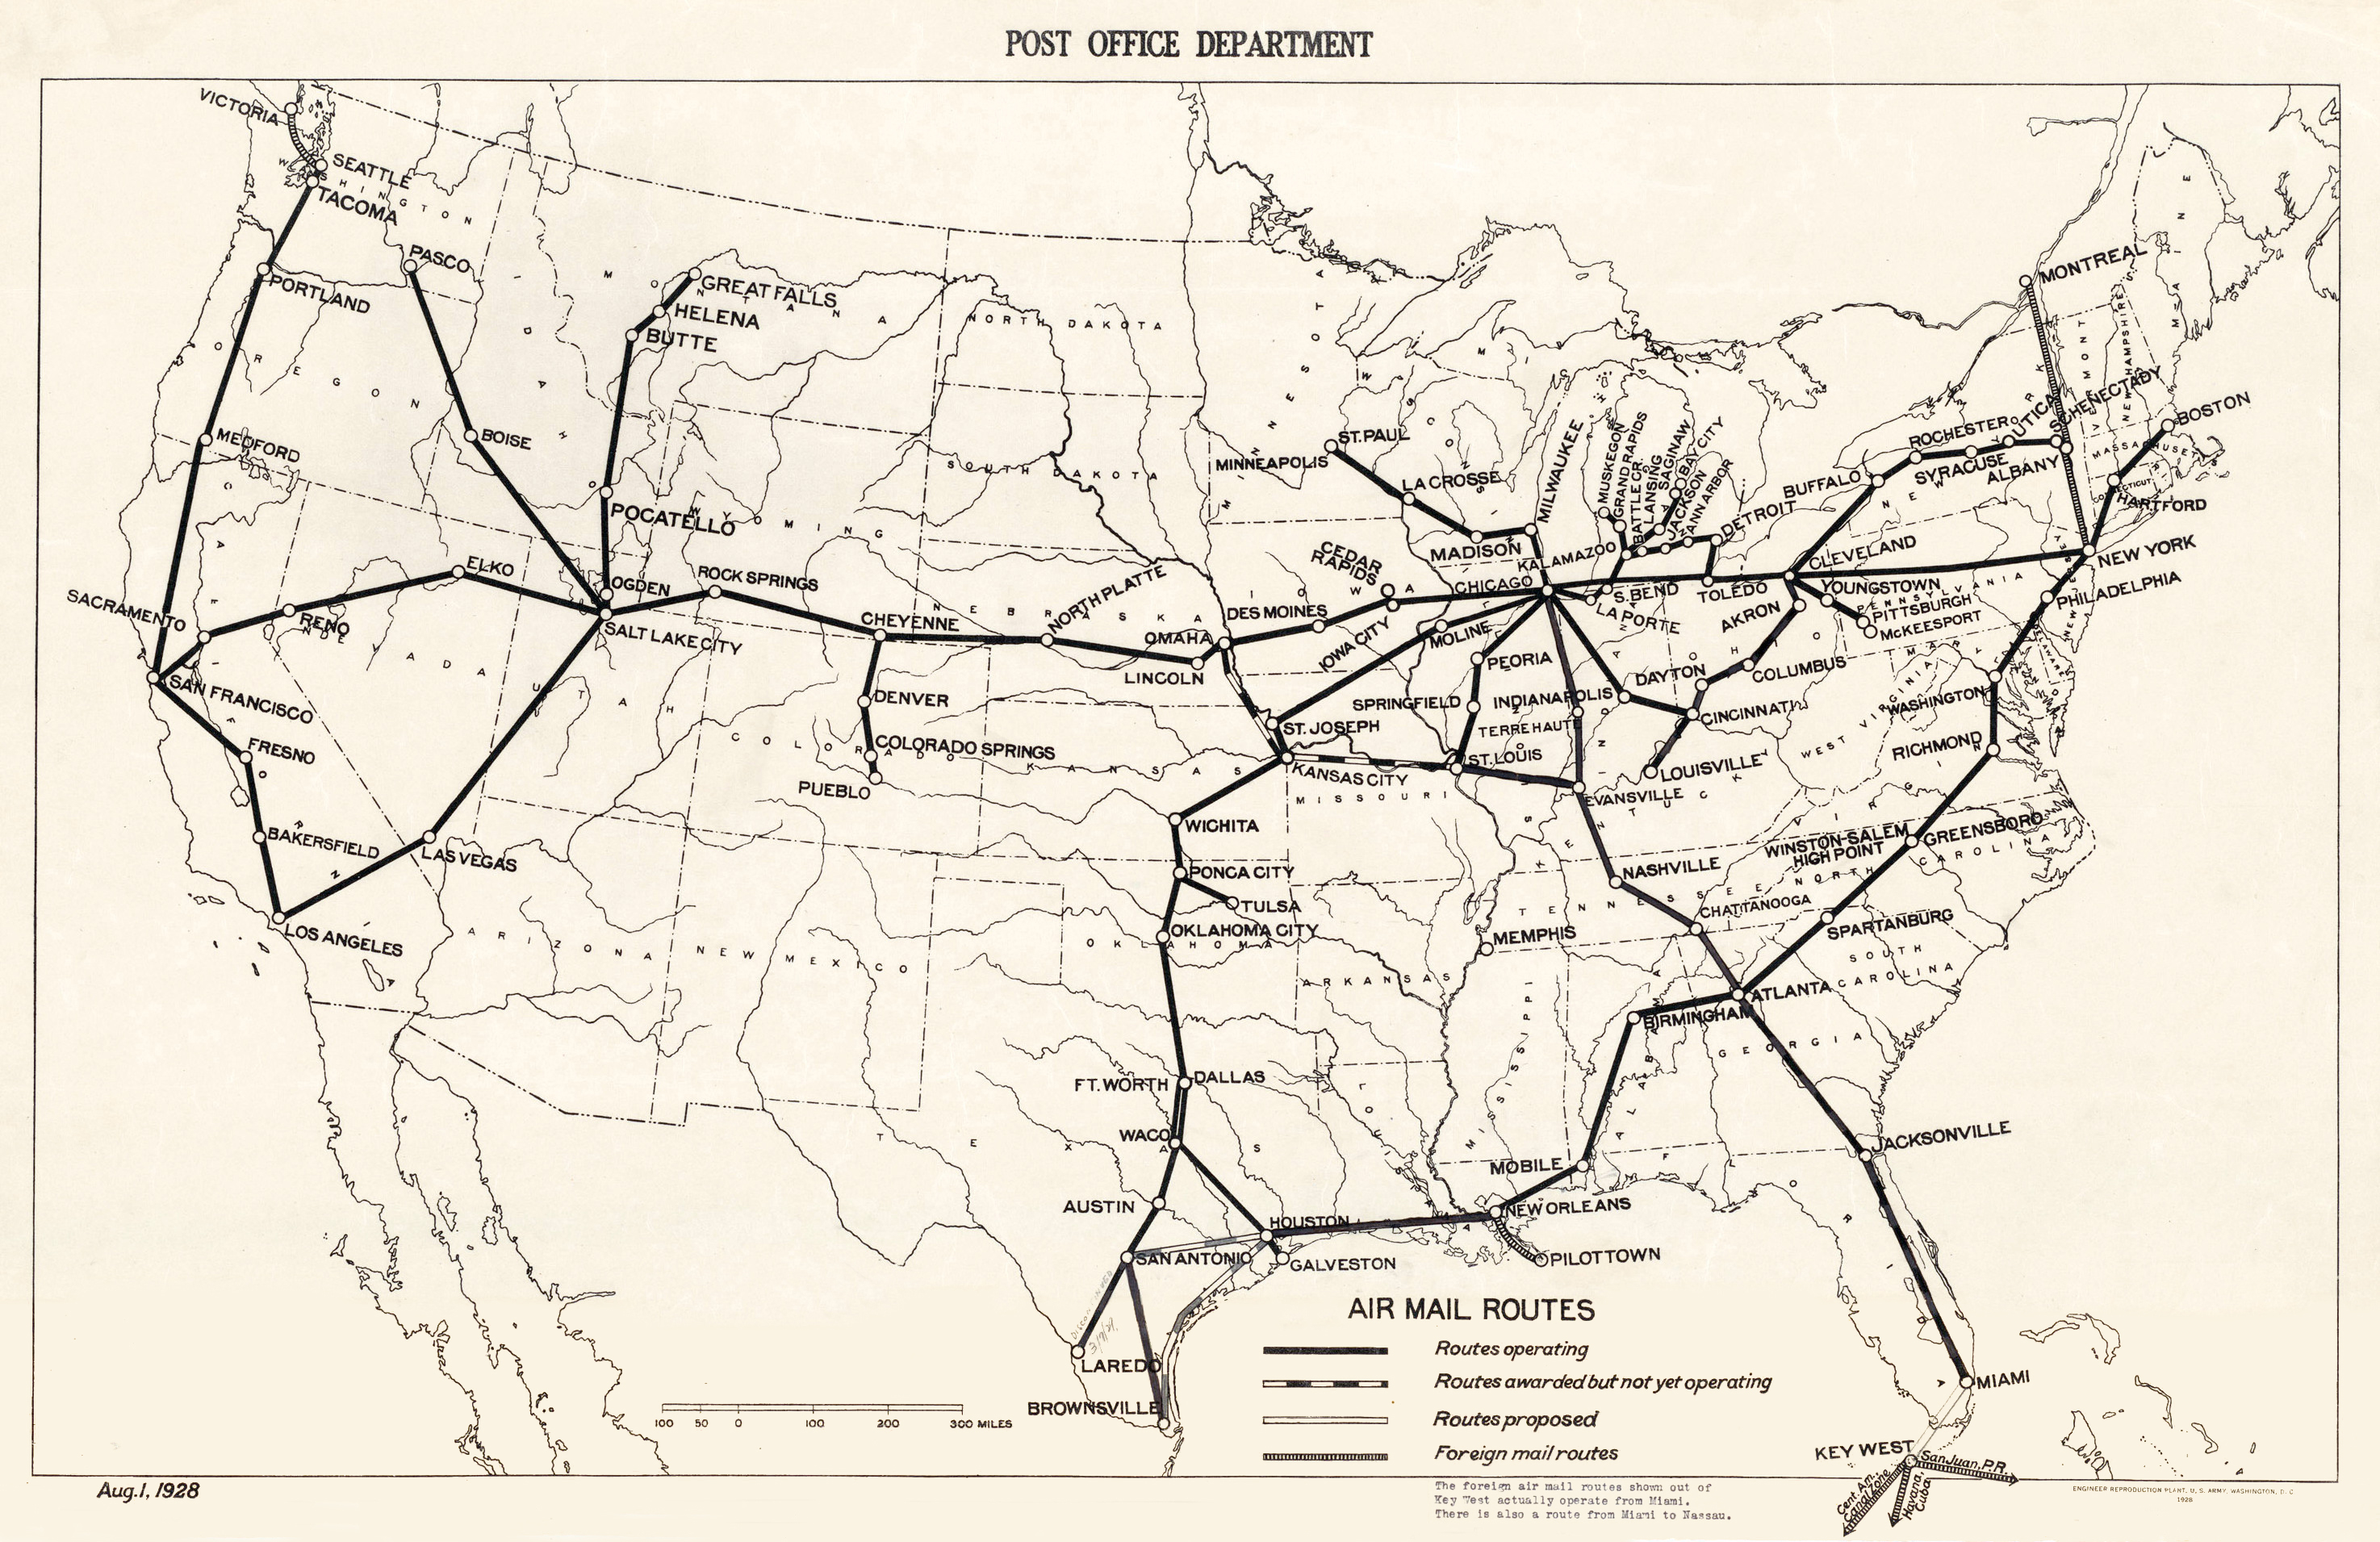 File:USPOD 1928 air mail route map.jpg - Wikimedia Commons on transport map of routes, map of us interstate routes, us map road trip, map of the united states with routes, us interstate highway maps routes, map of amtrak train routes, world map with routes,